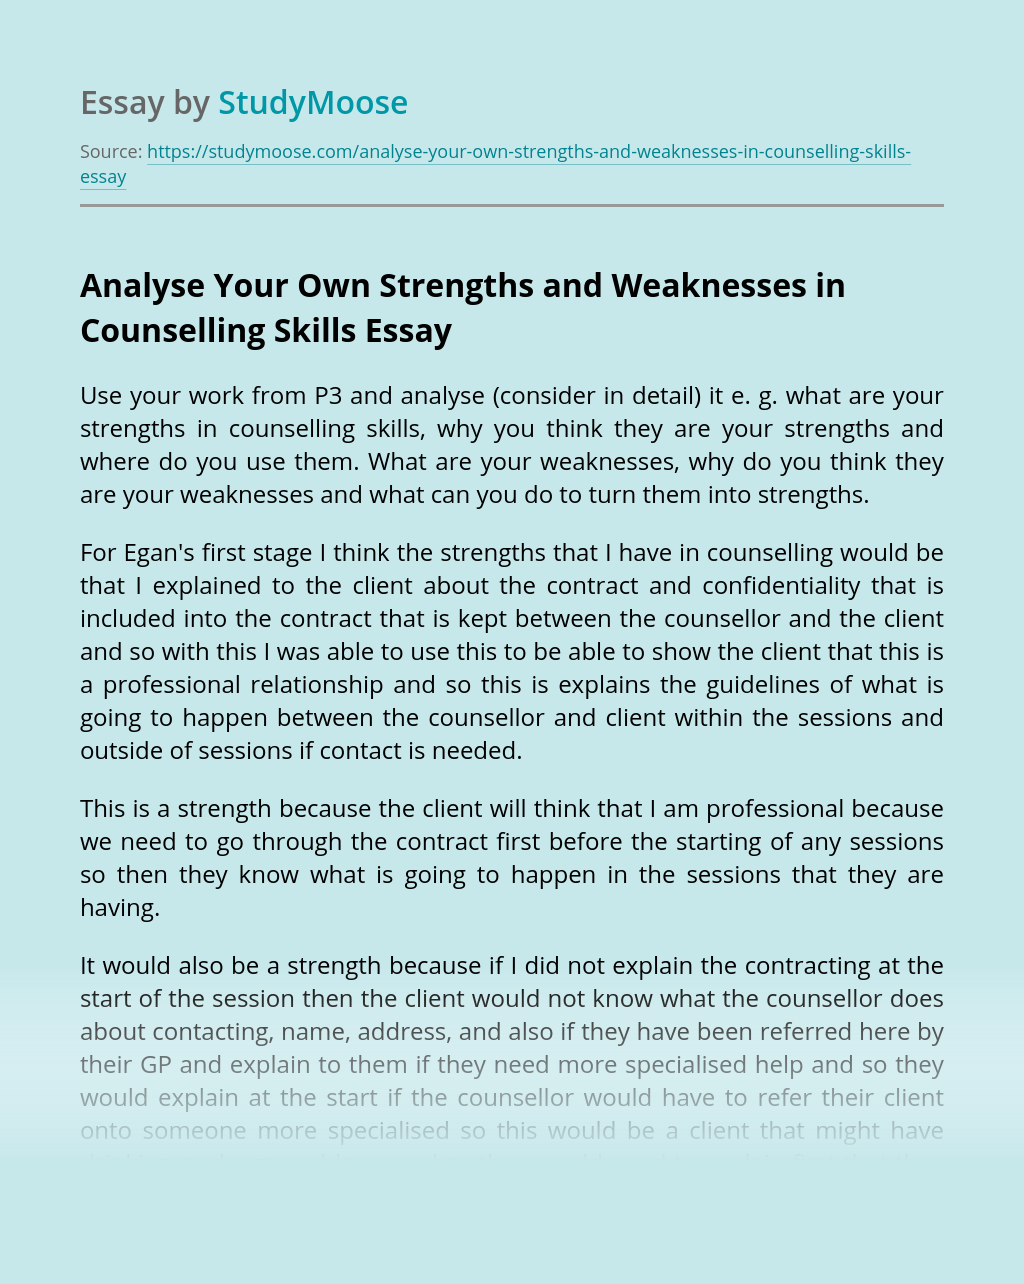 Analyse Your Own Strengths and Weaknesses in Counselling Skills